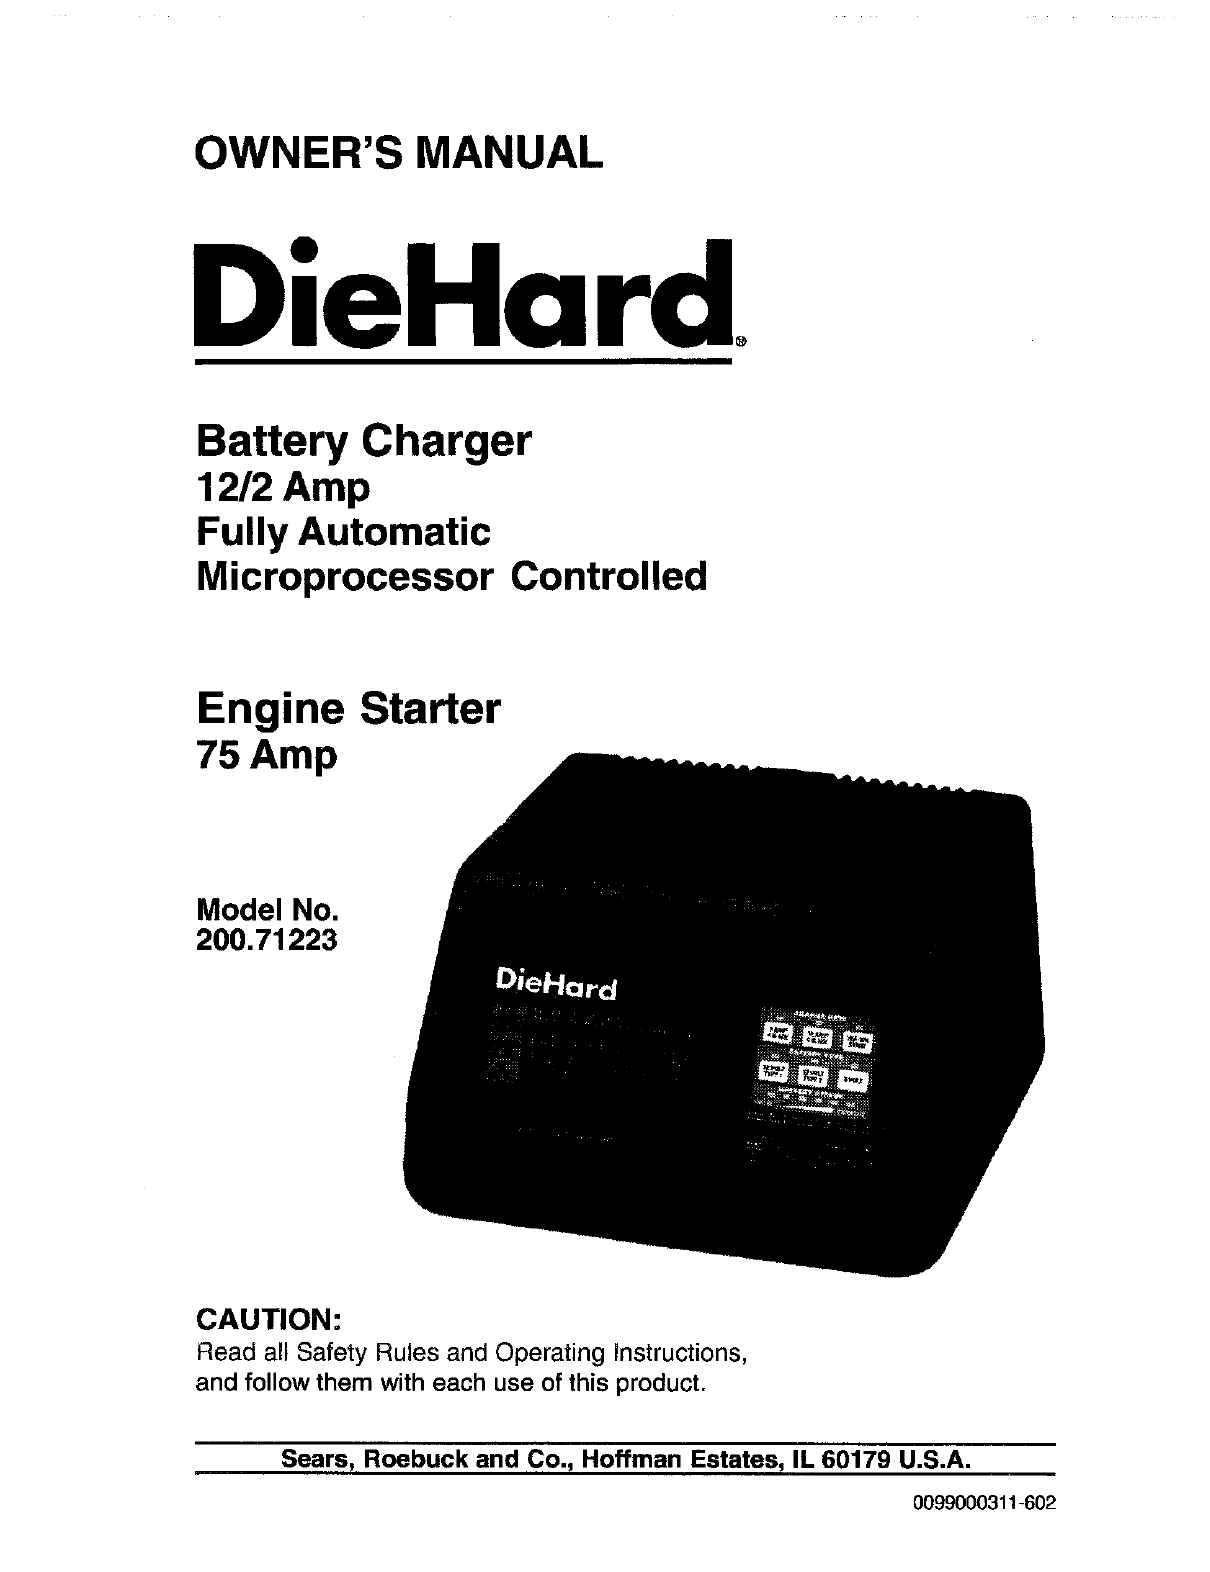 sca microprocessor controlled battery charger instructions